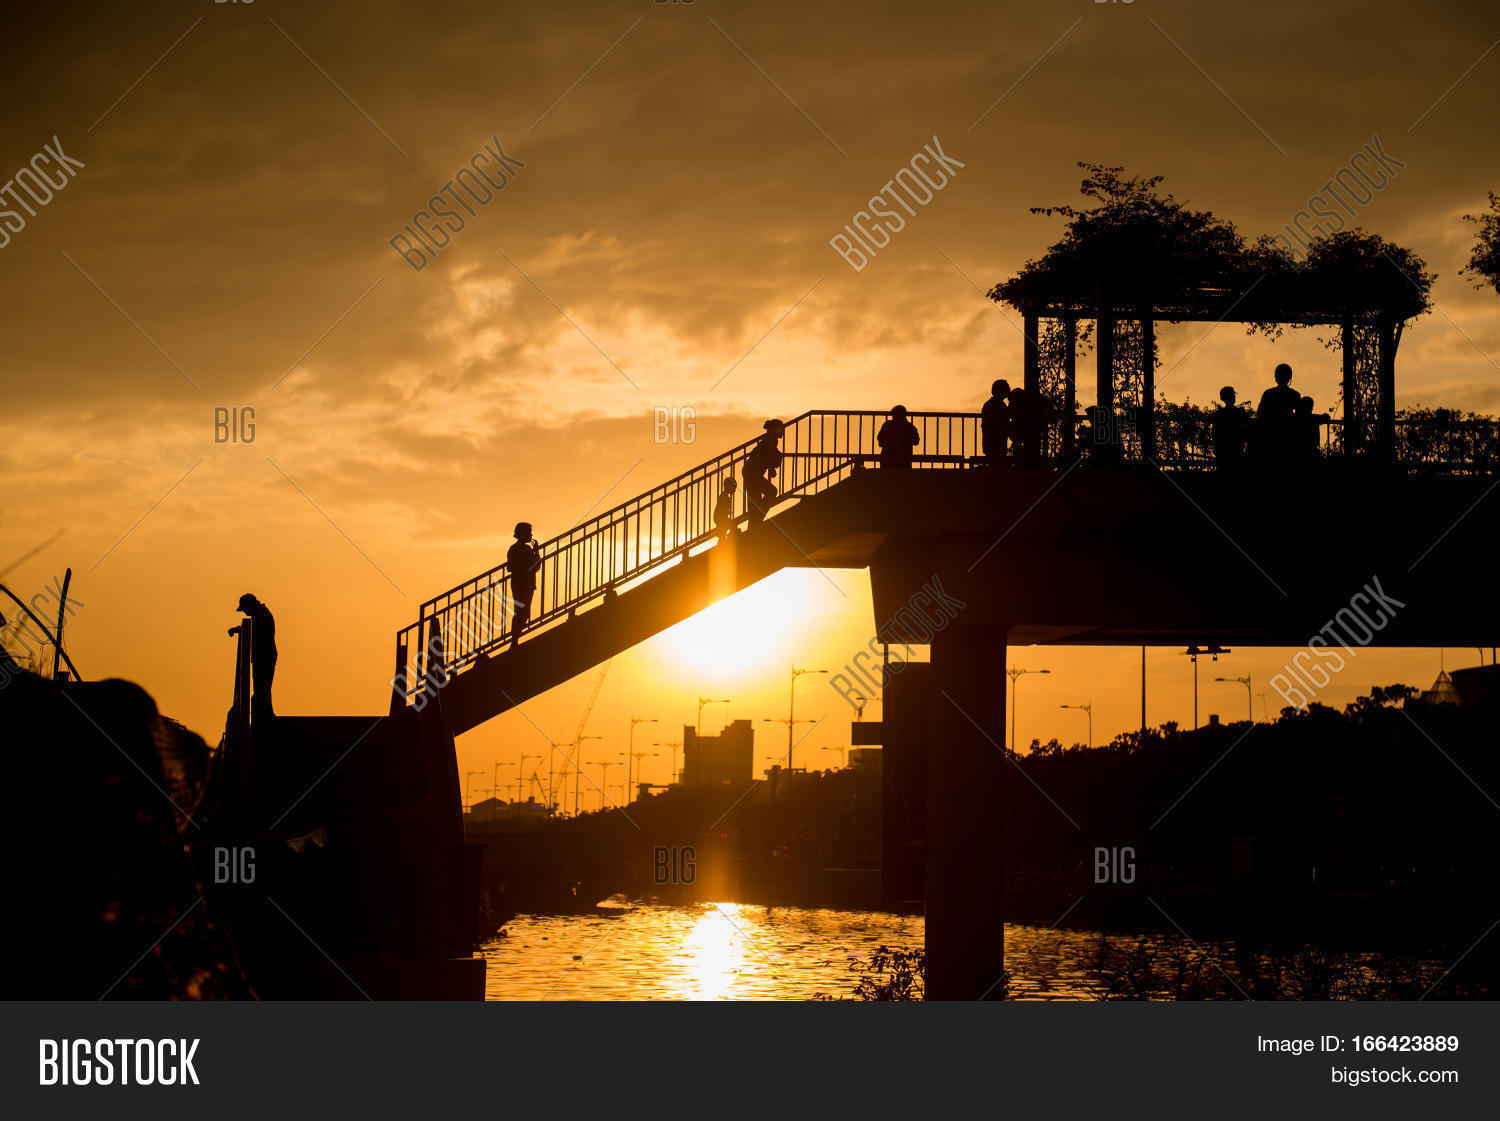 Binh Dong Floating Flower Market.Sunset On Ben Binh Dong Flower Image Photo Hd Bigstock